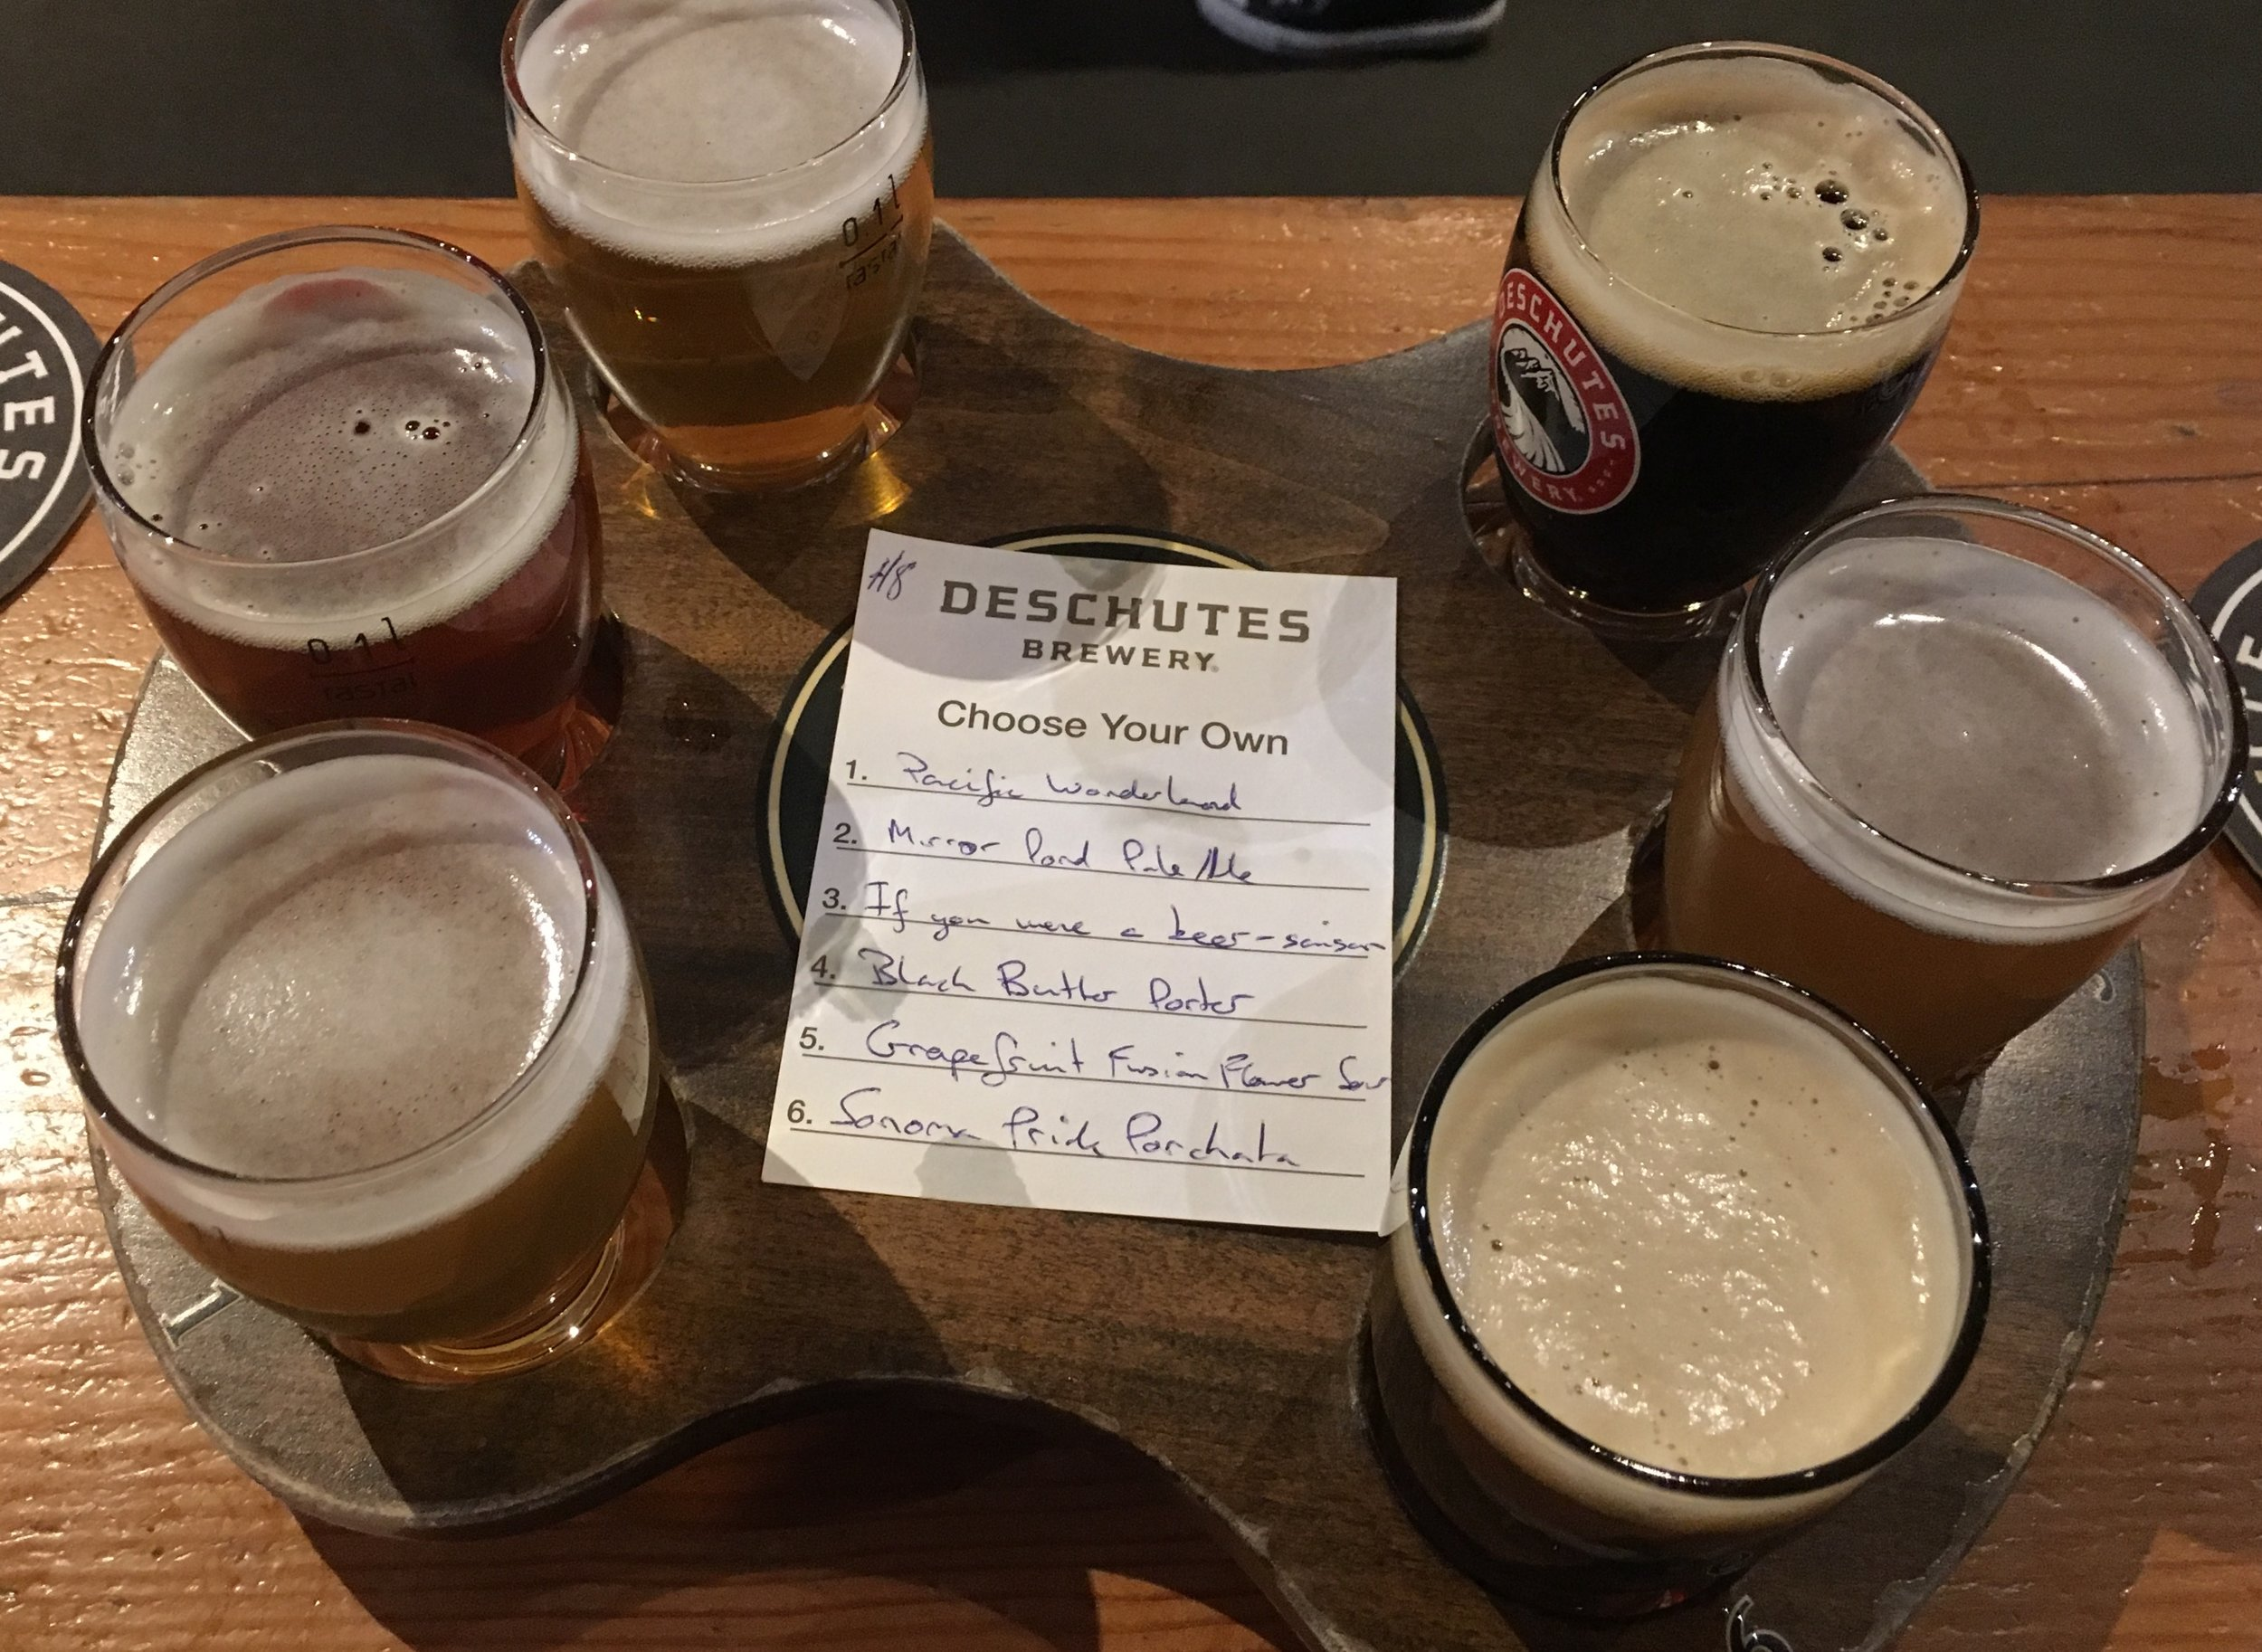 Our different beers we tasted at our first brew pub